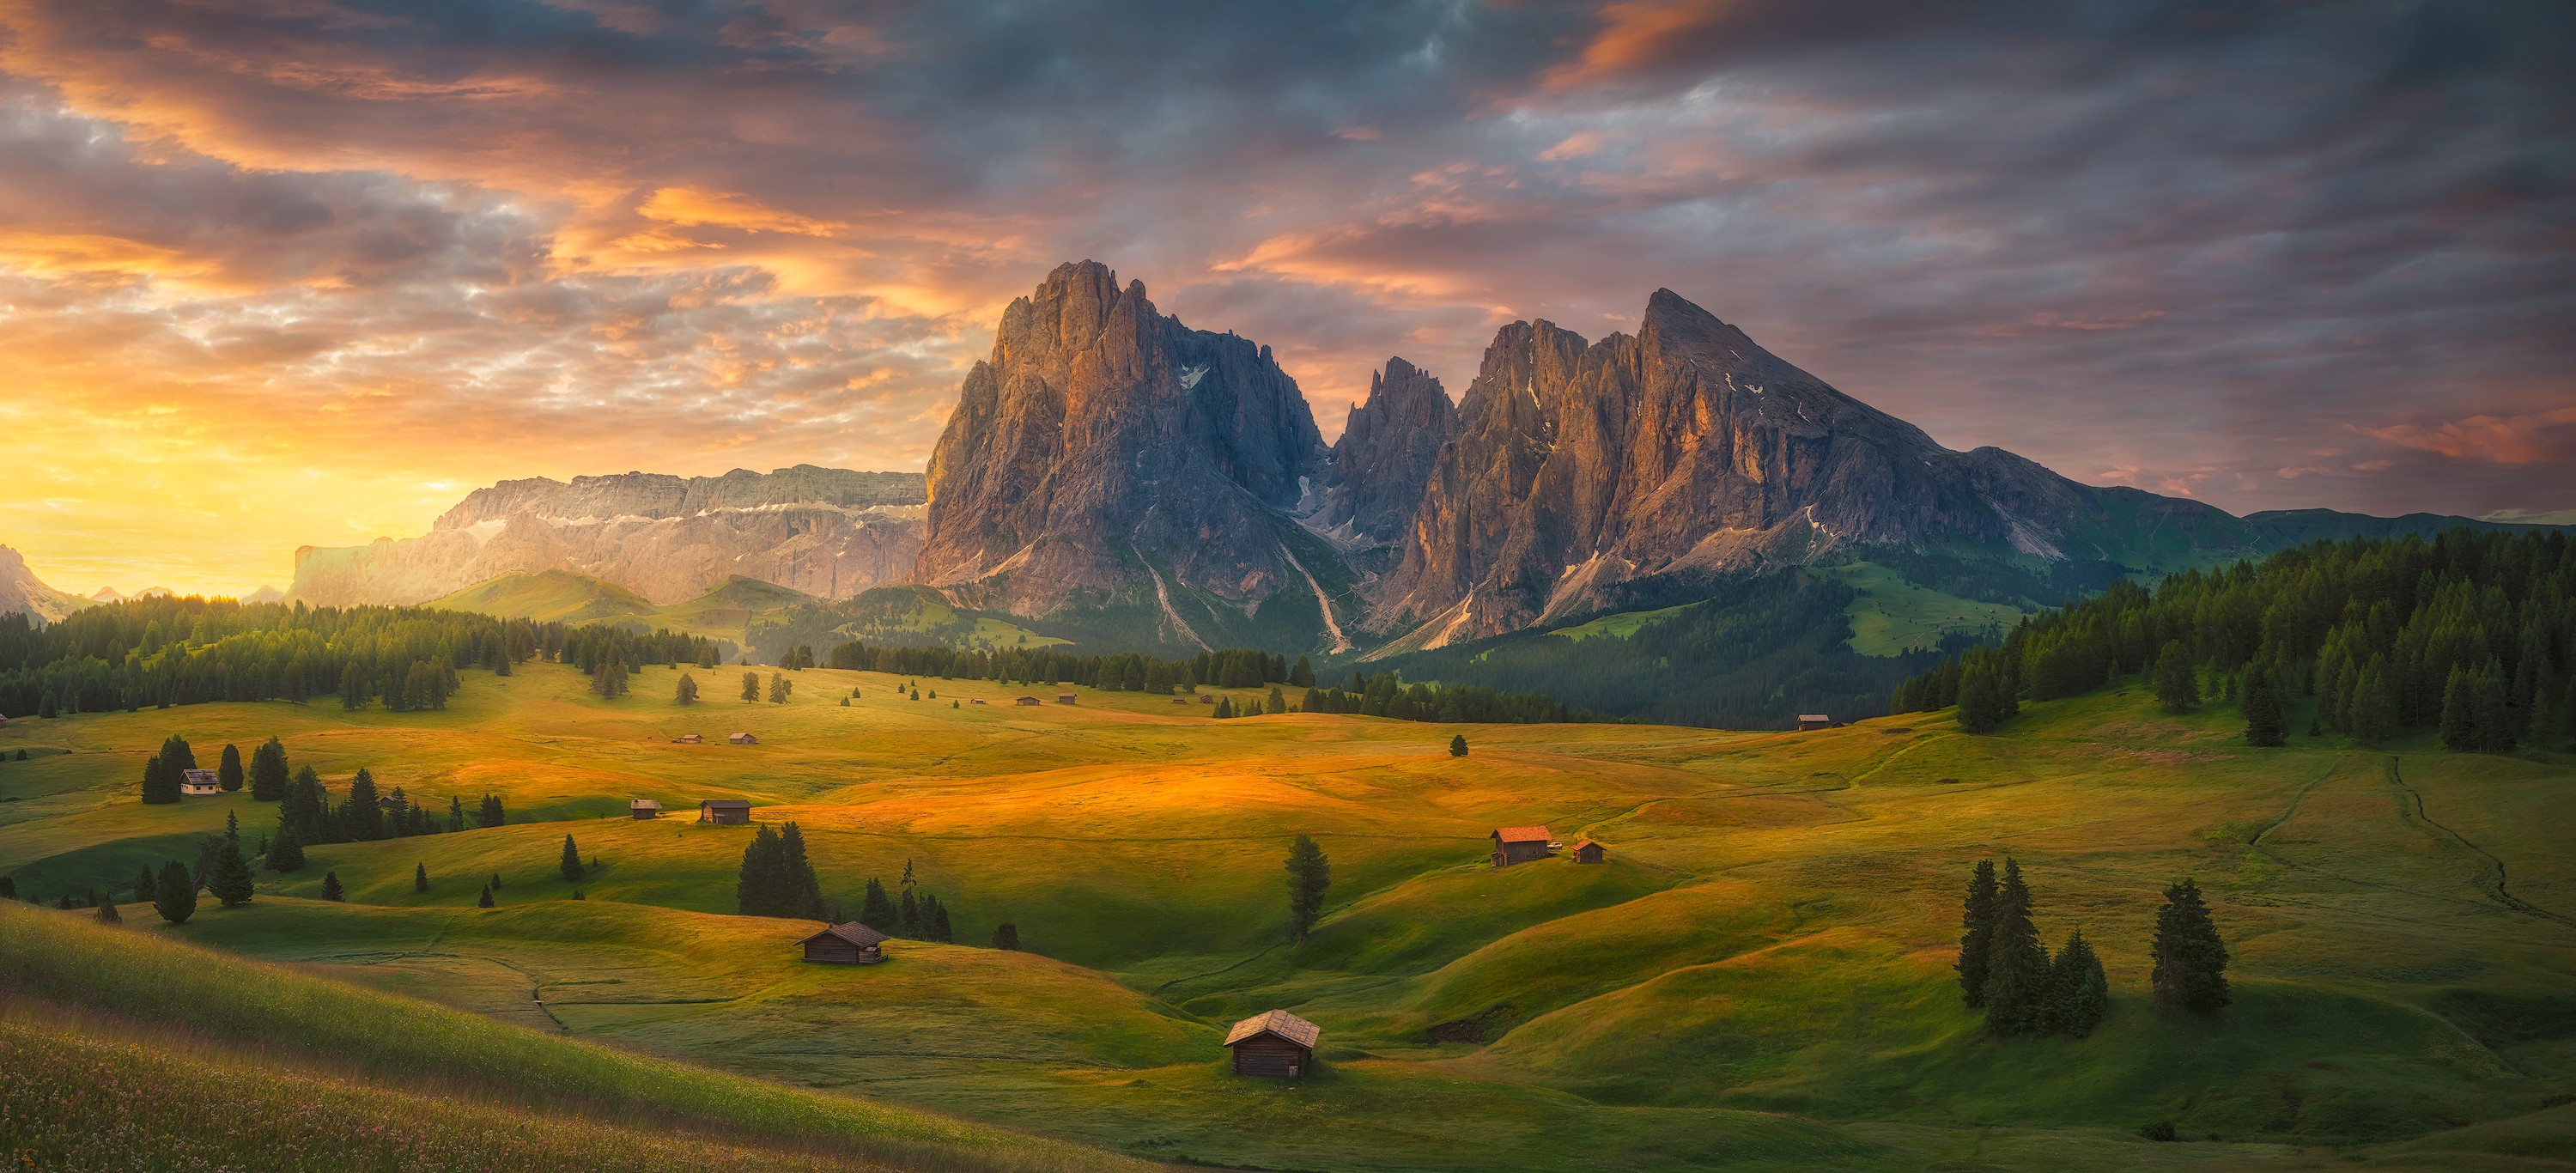 The sunrises over a valley in Italy, backed by a beautiful mountain and dotted with charming, small houses